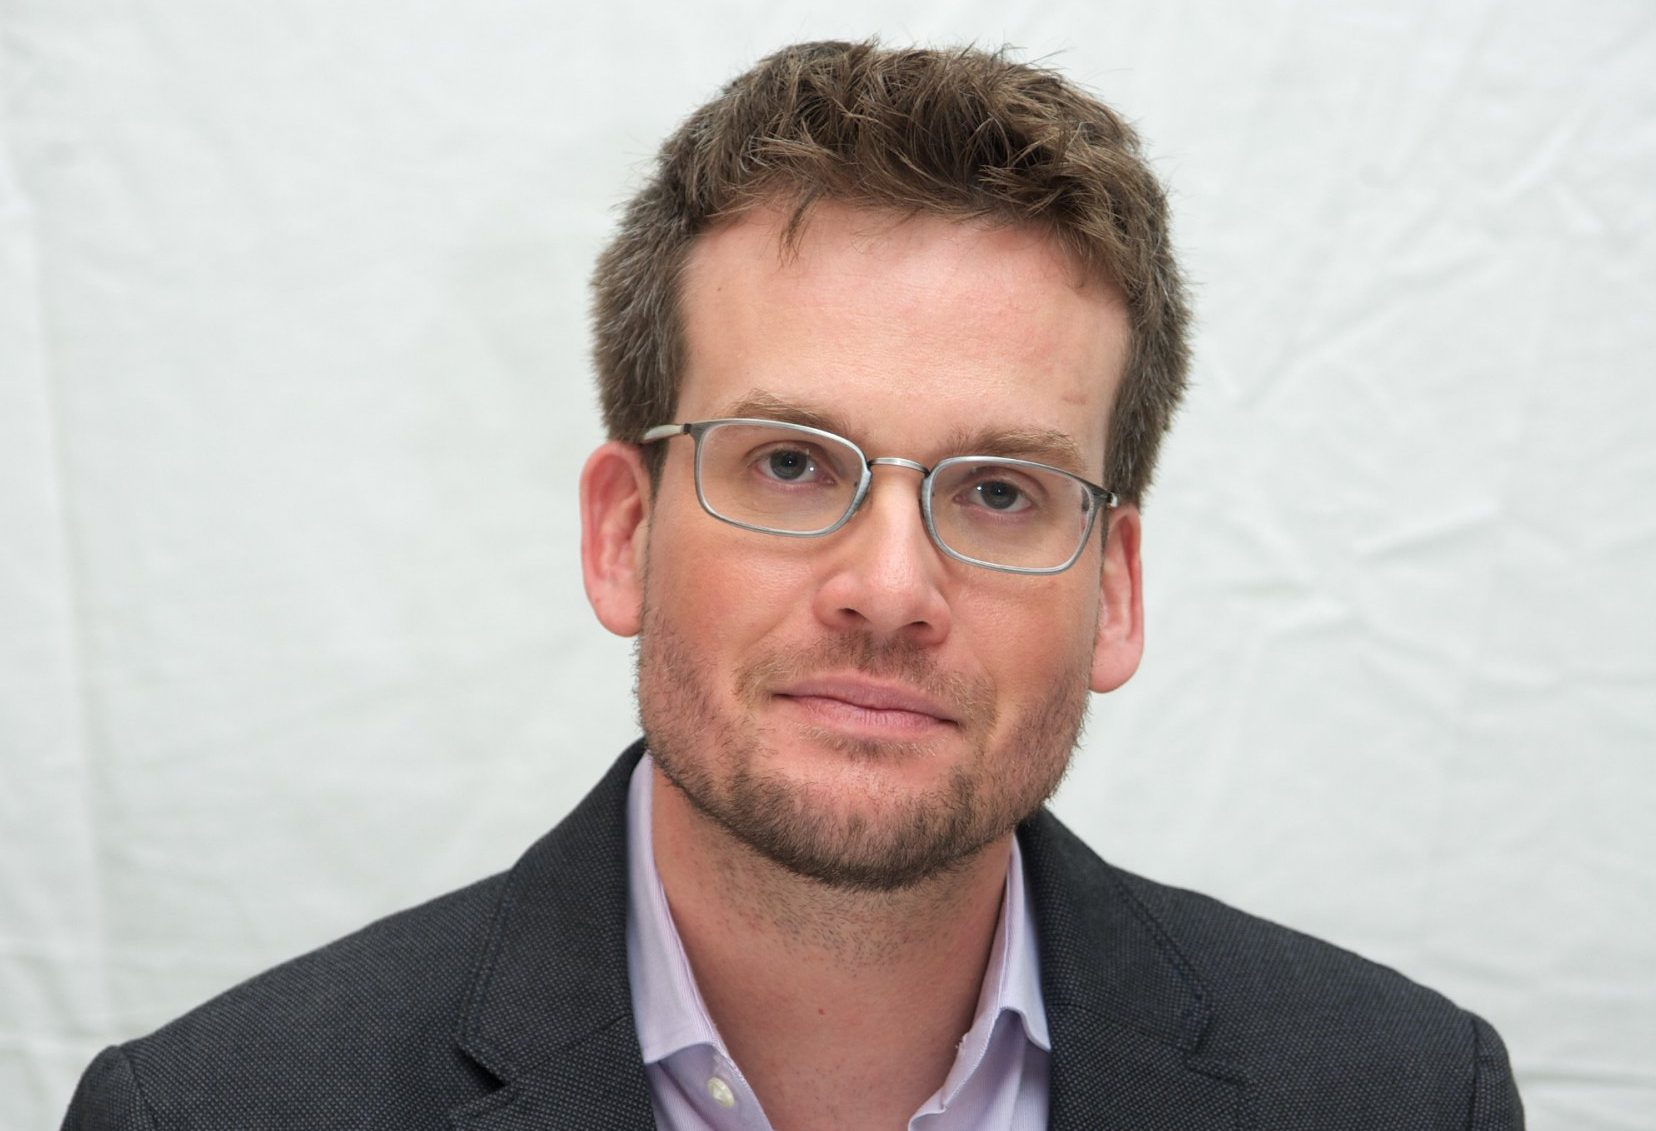 """WEST HOLLYWOOD, CA - APRIL 24: Author John Green at the """"Paper Towns"""" Press Conference at The London Hotel on April 24, 2015 in West Hollywood, California. (Photo by Vera Anderson/WireImage)"""